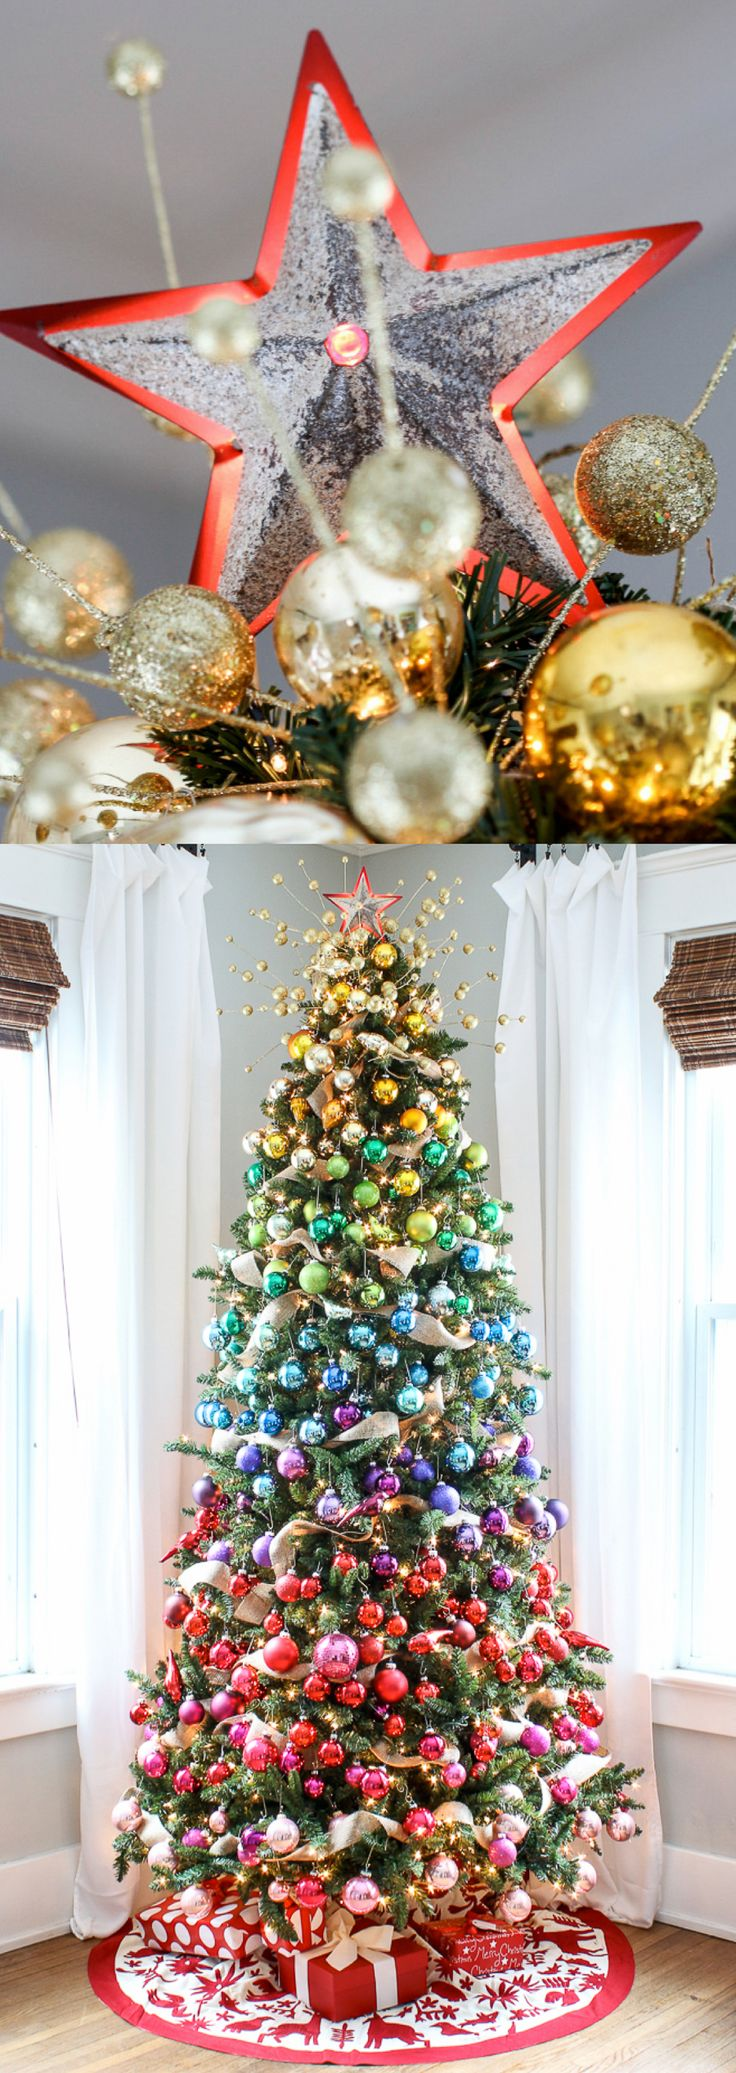 Best 25+ Unique christmas decorations ideas on Pinterest | DIY Christmas  door decorations, Christmas door wreaths and Christmas picture frames